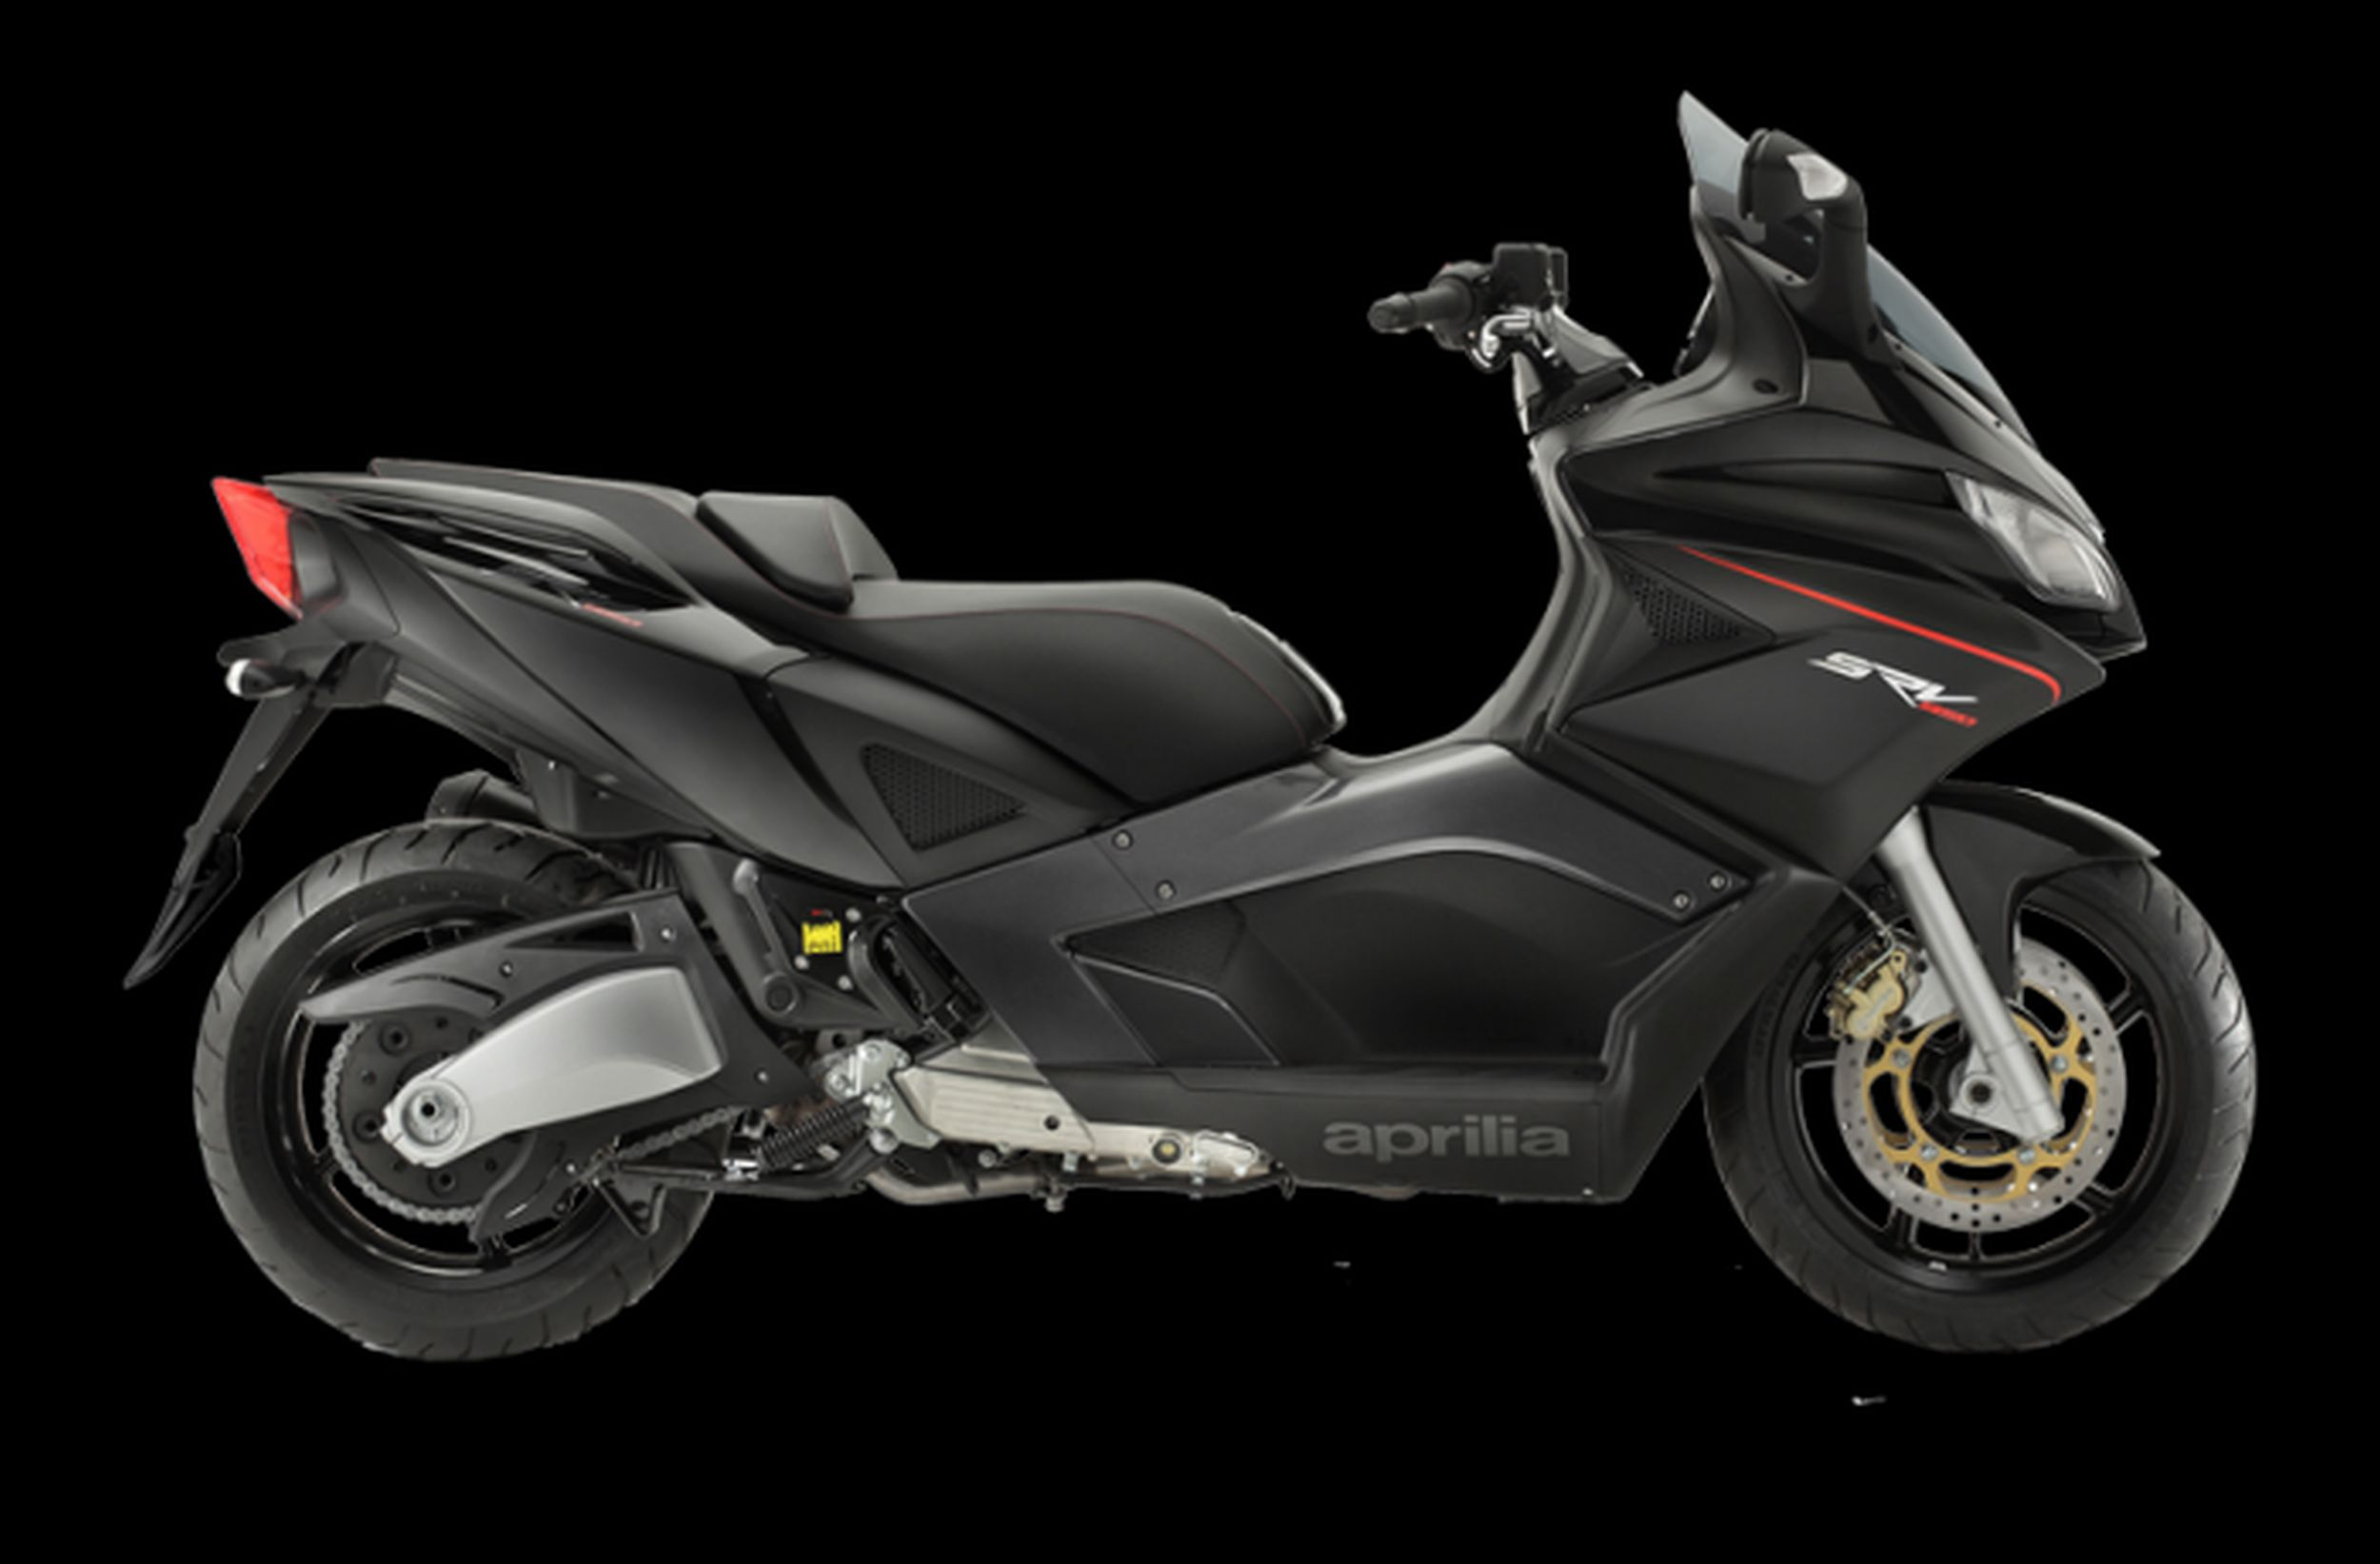 aprilia srv 850 i e abs atc alle technischen daten zum modell srv 850 i e abs atc von aprilia. Black Bedroom Furniture Sets. Home Design Ideas